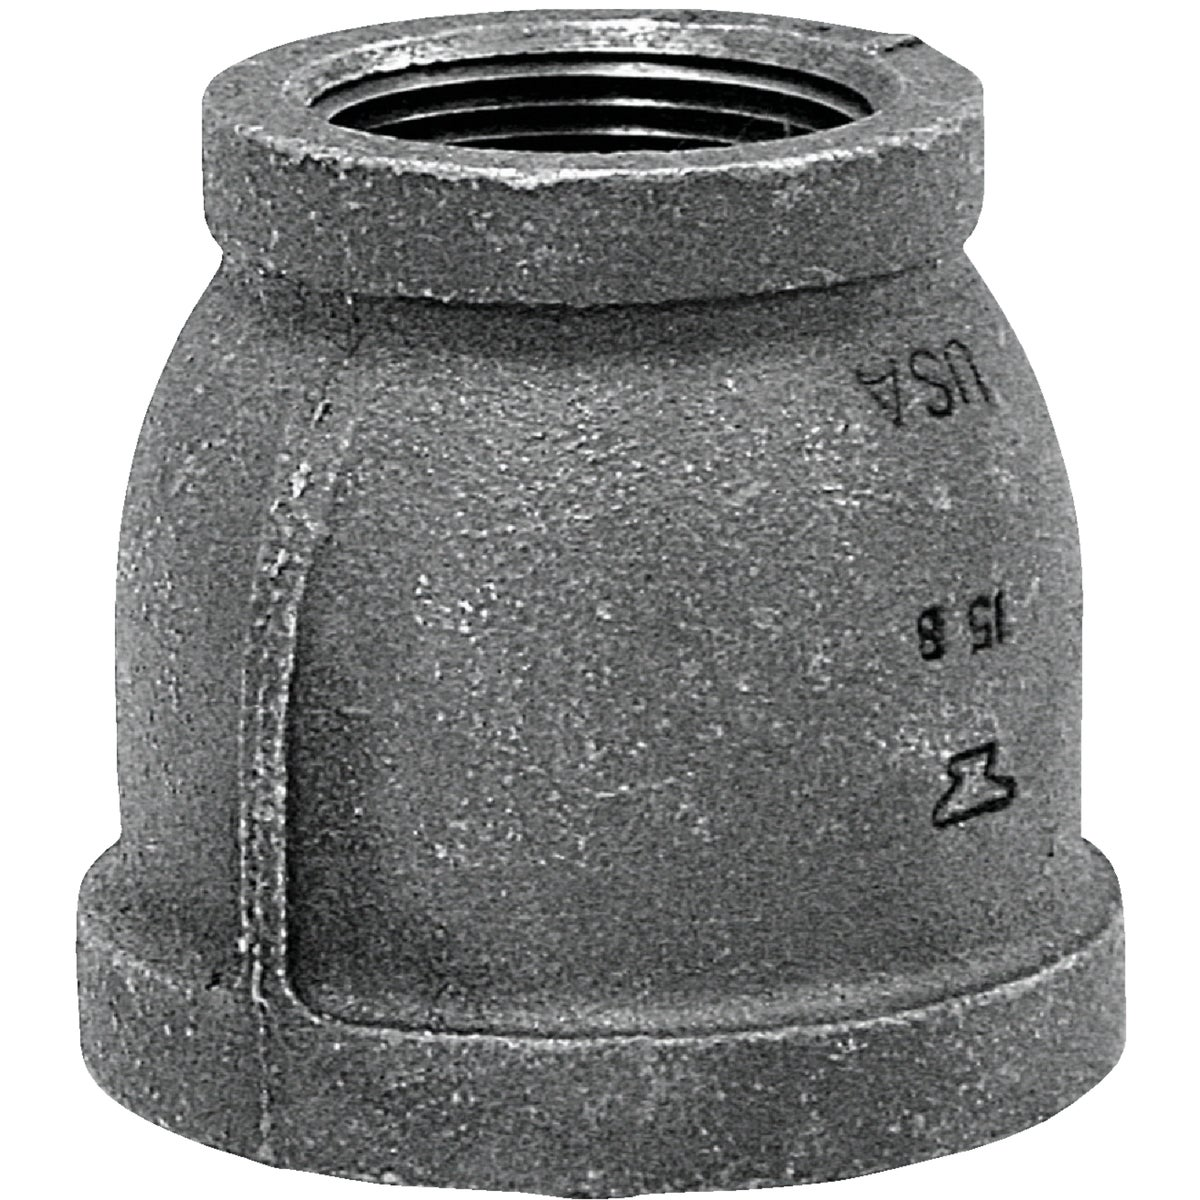 1-1/2X1-1/4 BLK COUPLING